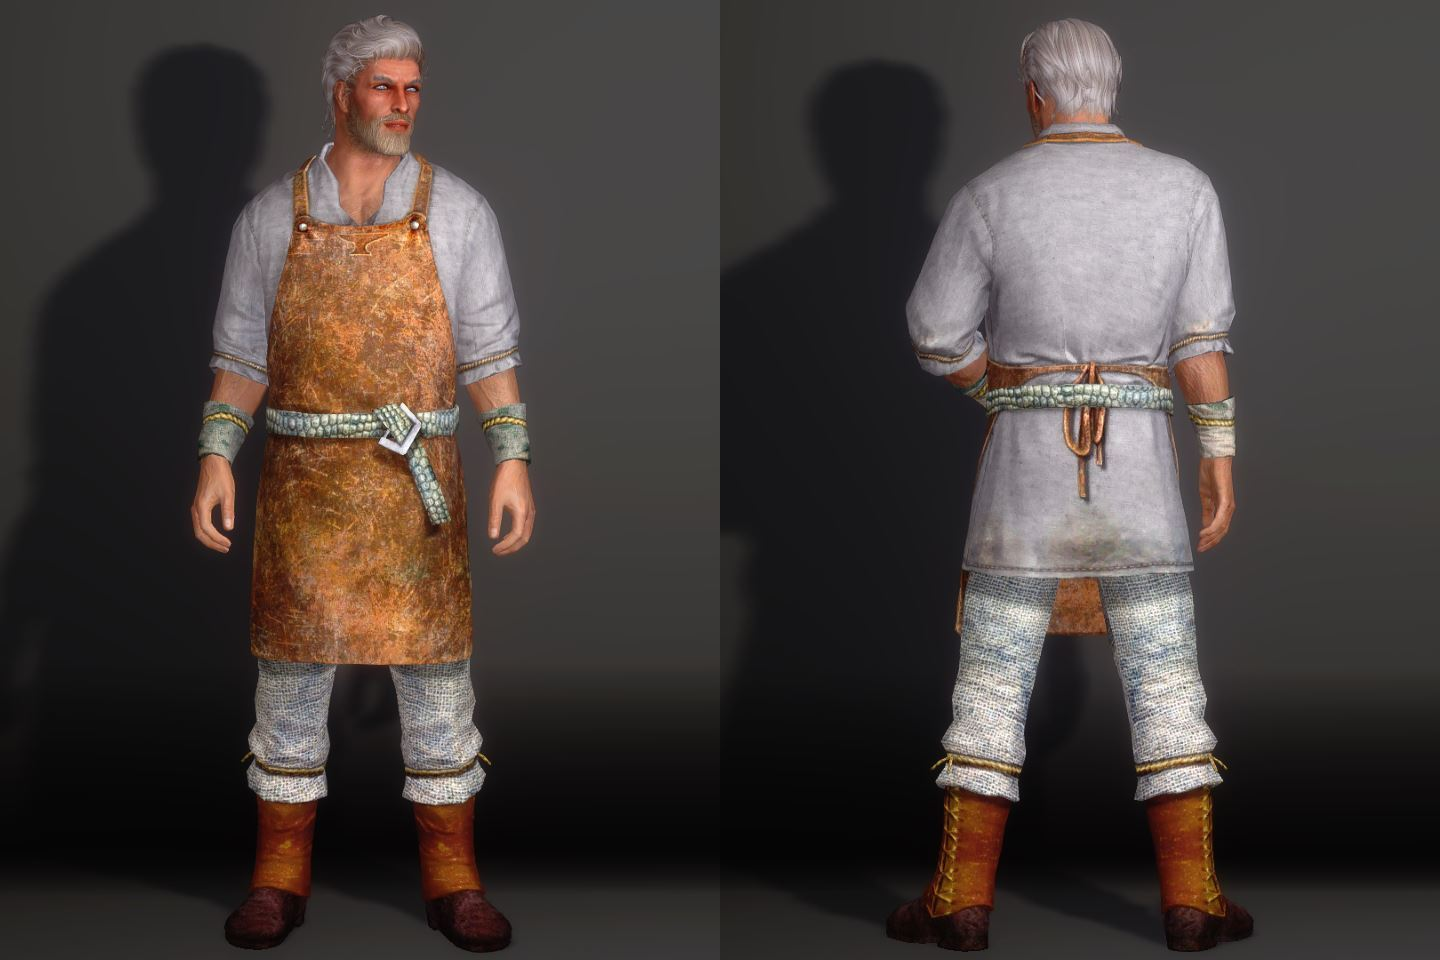 HDQCitizensClothes2kLE 0241-1 Blacksmith 2 Fu-Ba-M 2